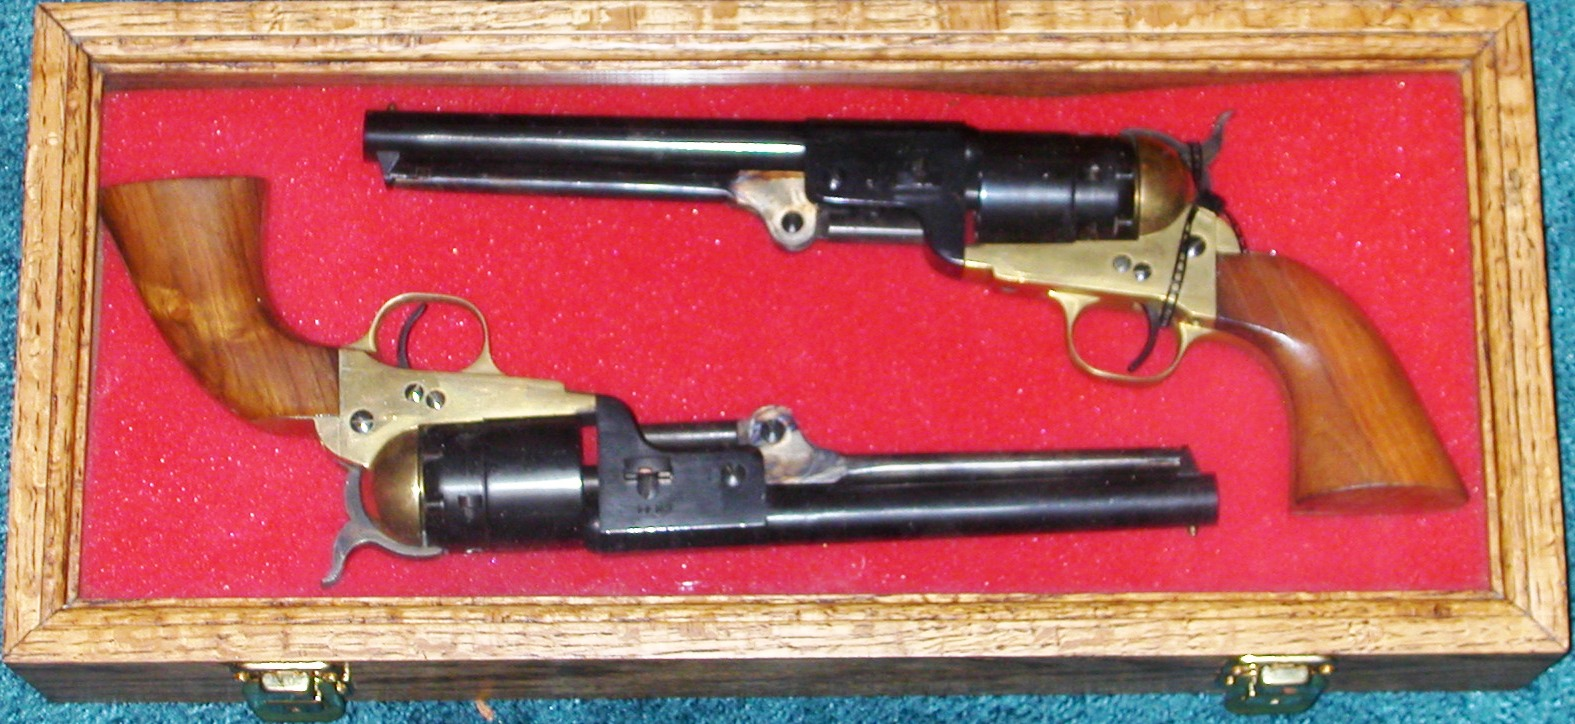 Col Hartley's Collection: Gallery 7 Non-Japanese Weapons, Pistols